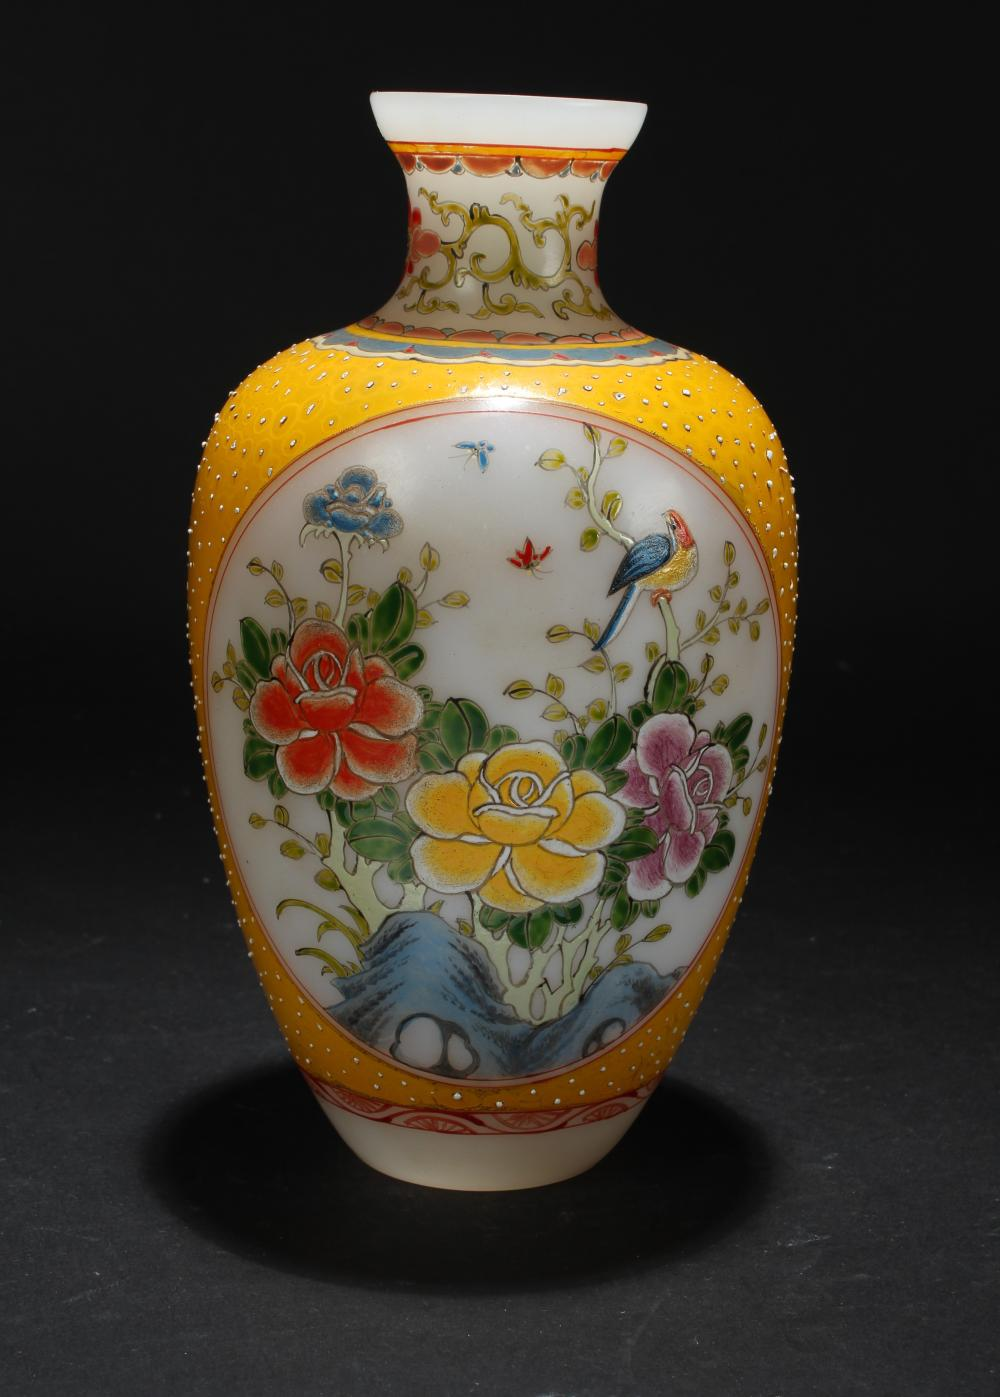 A Chinese Windowed-Fortune Overlay Display Vase